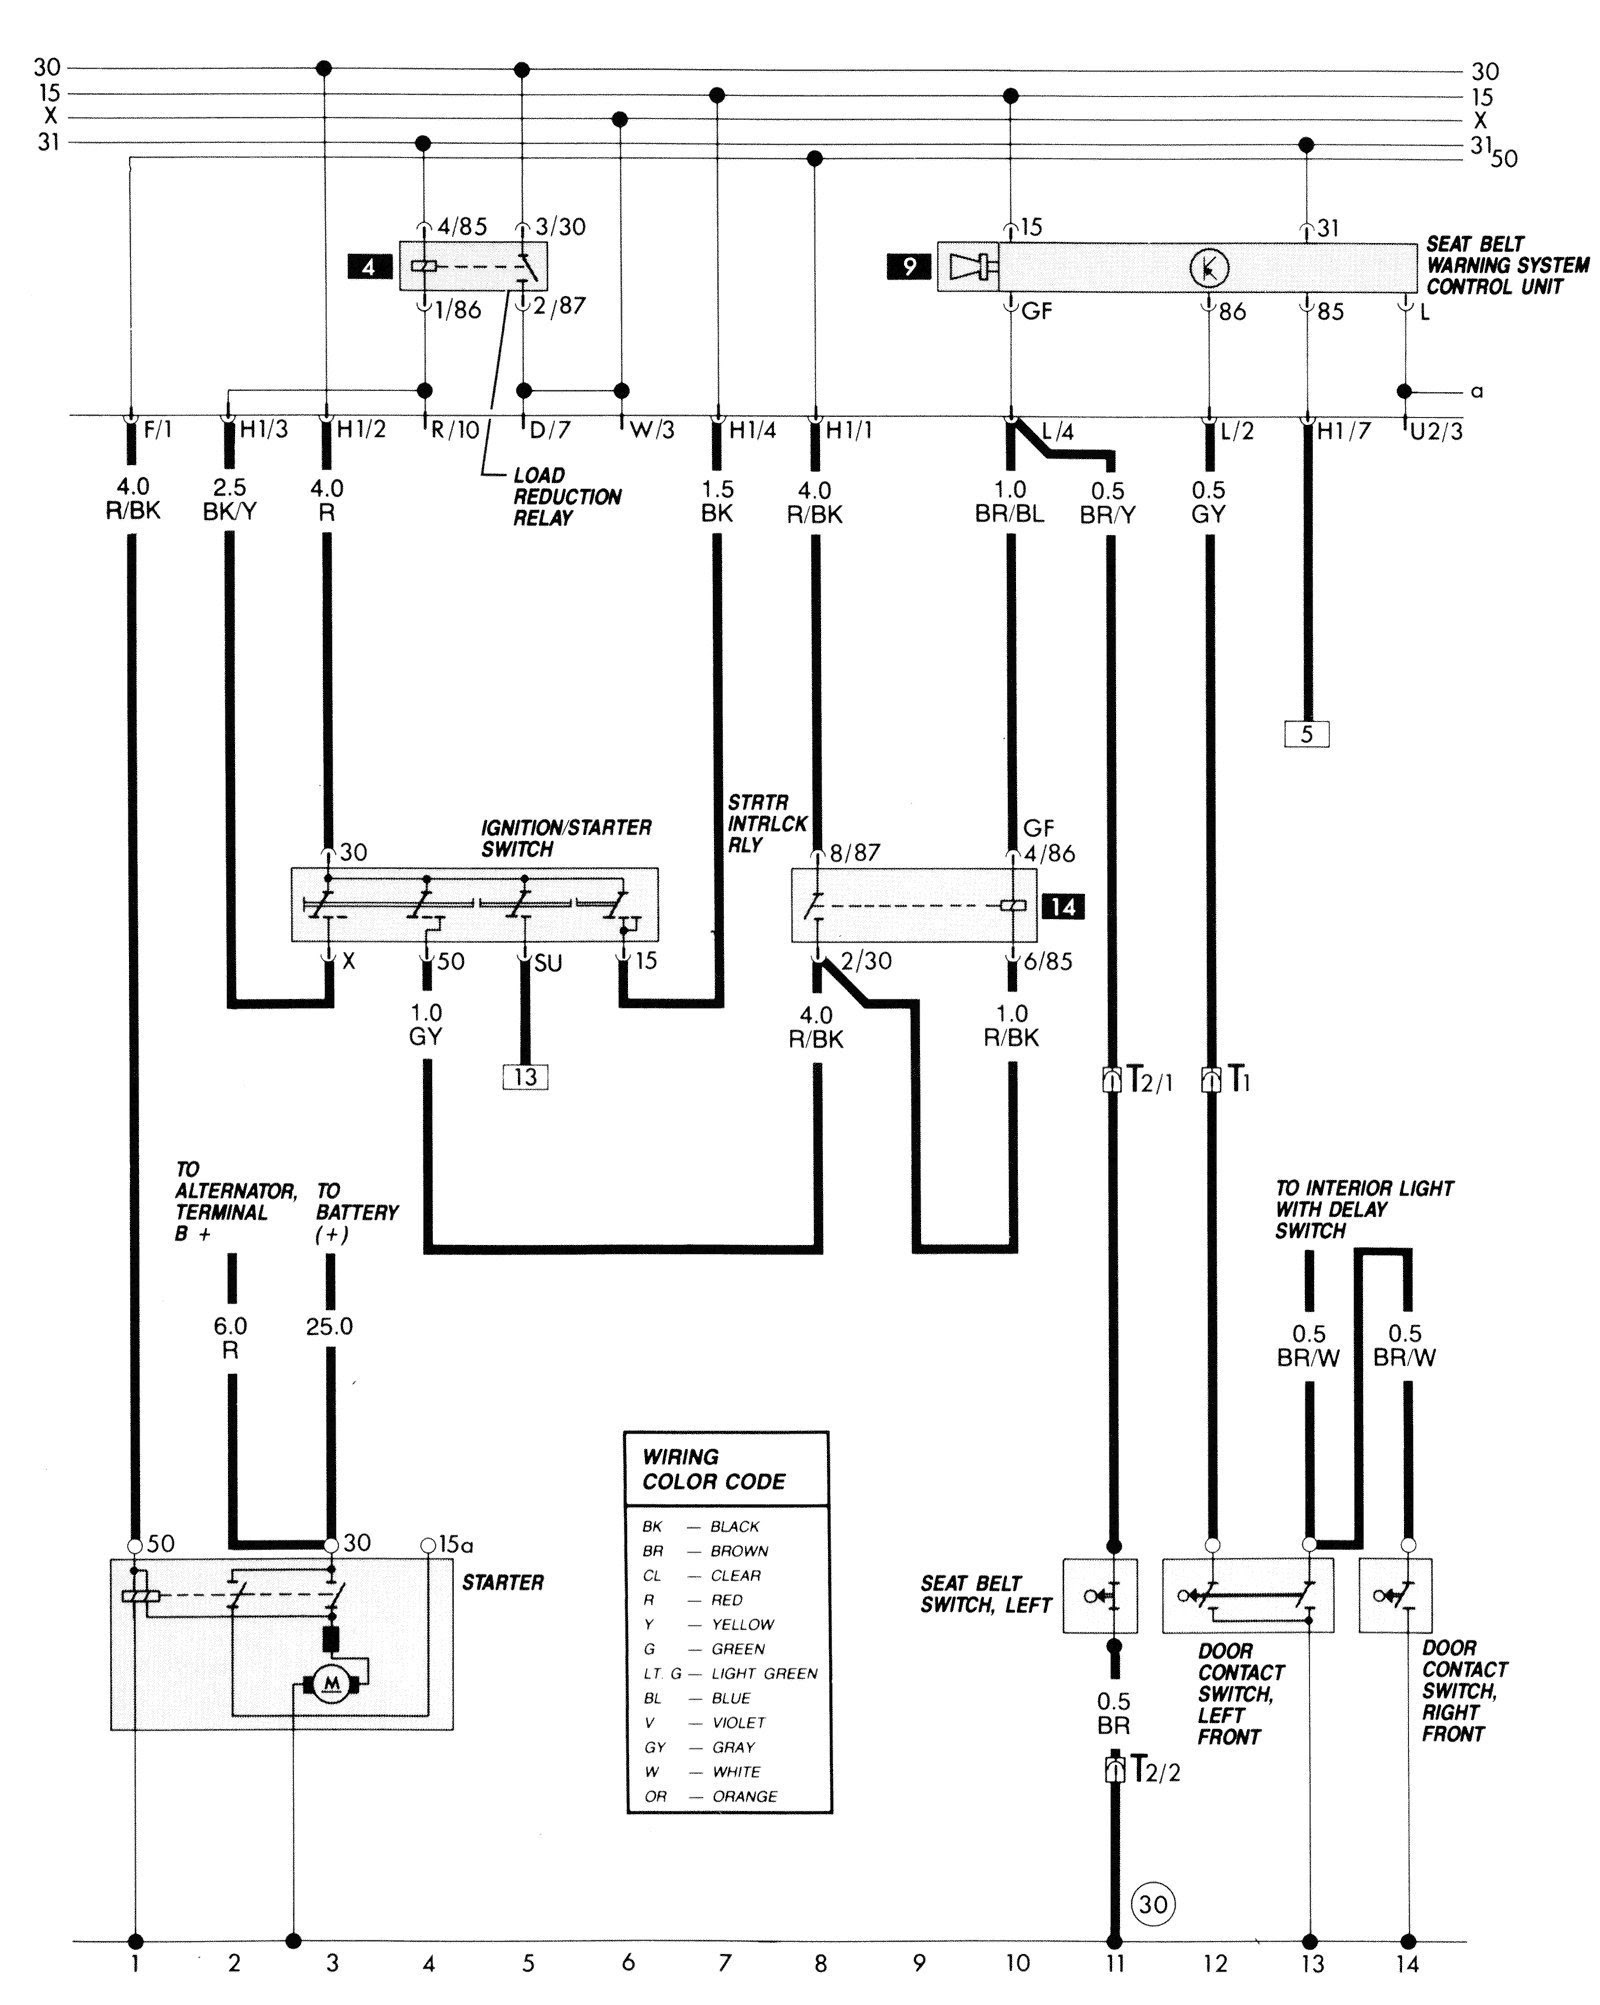 99 Passat Radio Wire Diagram 2012 Ford F350 Fuse Box Diagram For Wiring Diagram Schematics